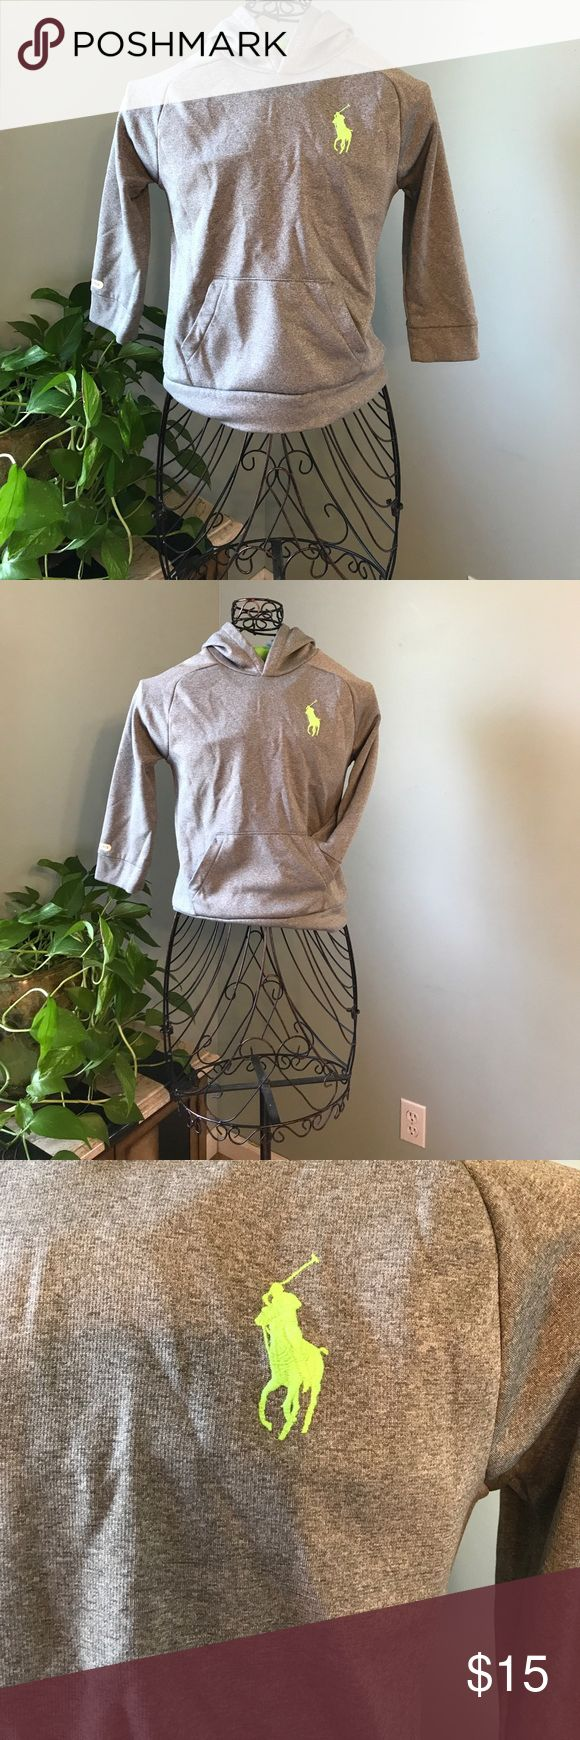 """Polo sweatshirt Polo Ralph Lauren Pullover styling. Front kangaroo pocket. Applied """"3"""" accents the right arm. Our embroidered Big Pony accents the left chest. Size 7 Polo by Ralph Lauren Shirts & Tops Sweatshirts & Hoodies"""